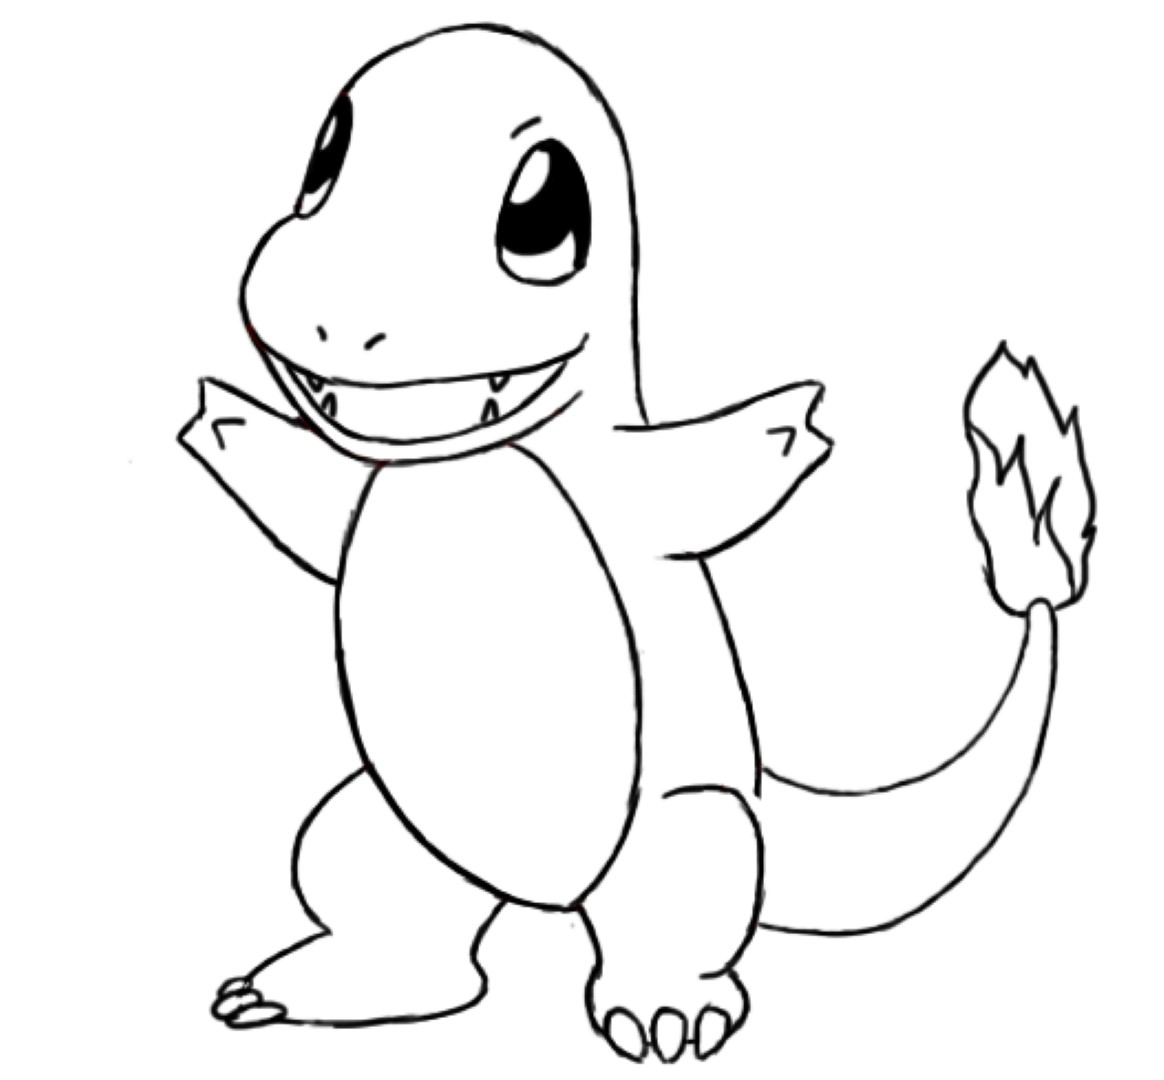 1164x1080 Charmander Coloring Pages